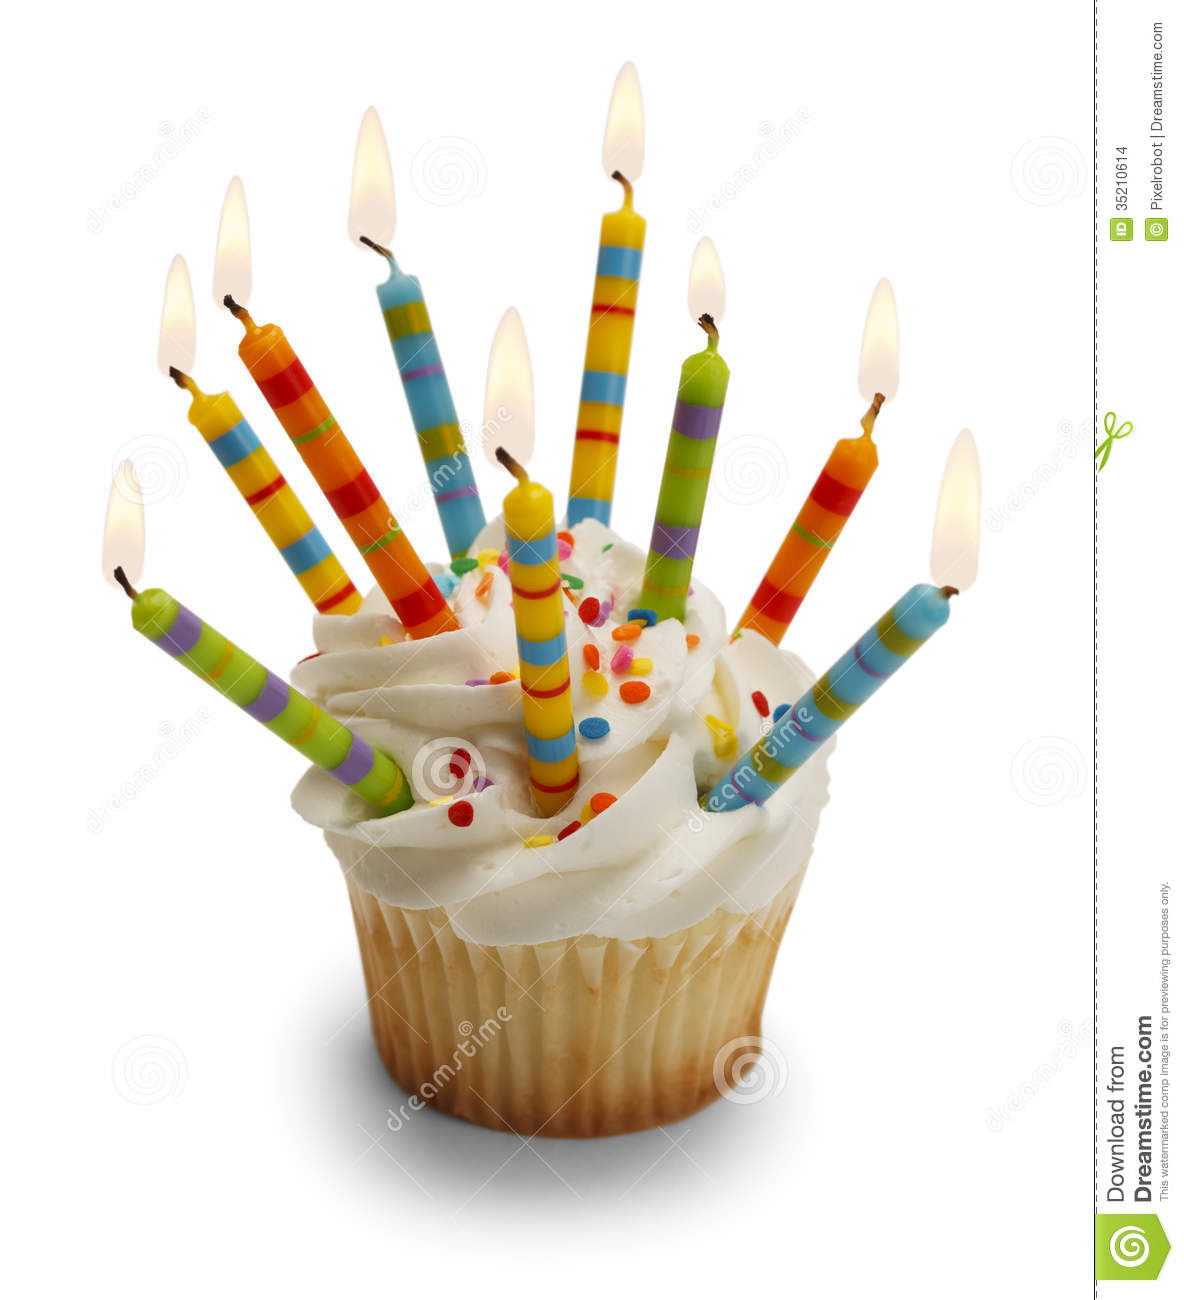 Cupcake with Lots of Candles Isolated on White Background.